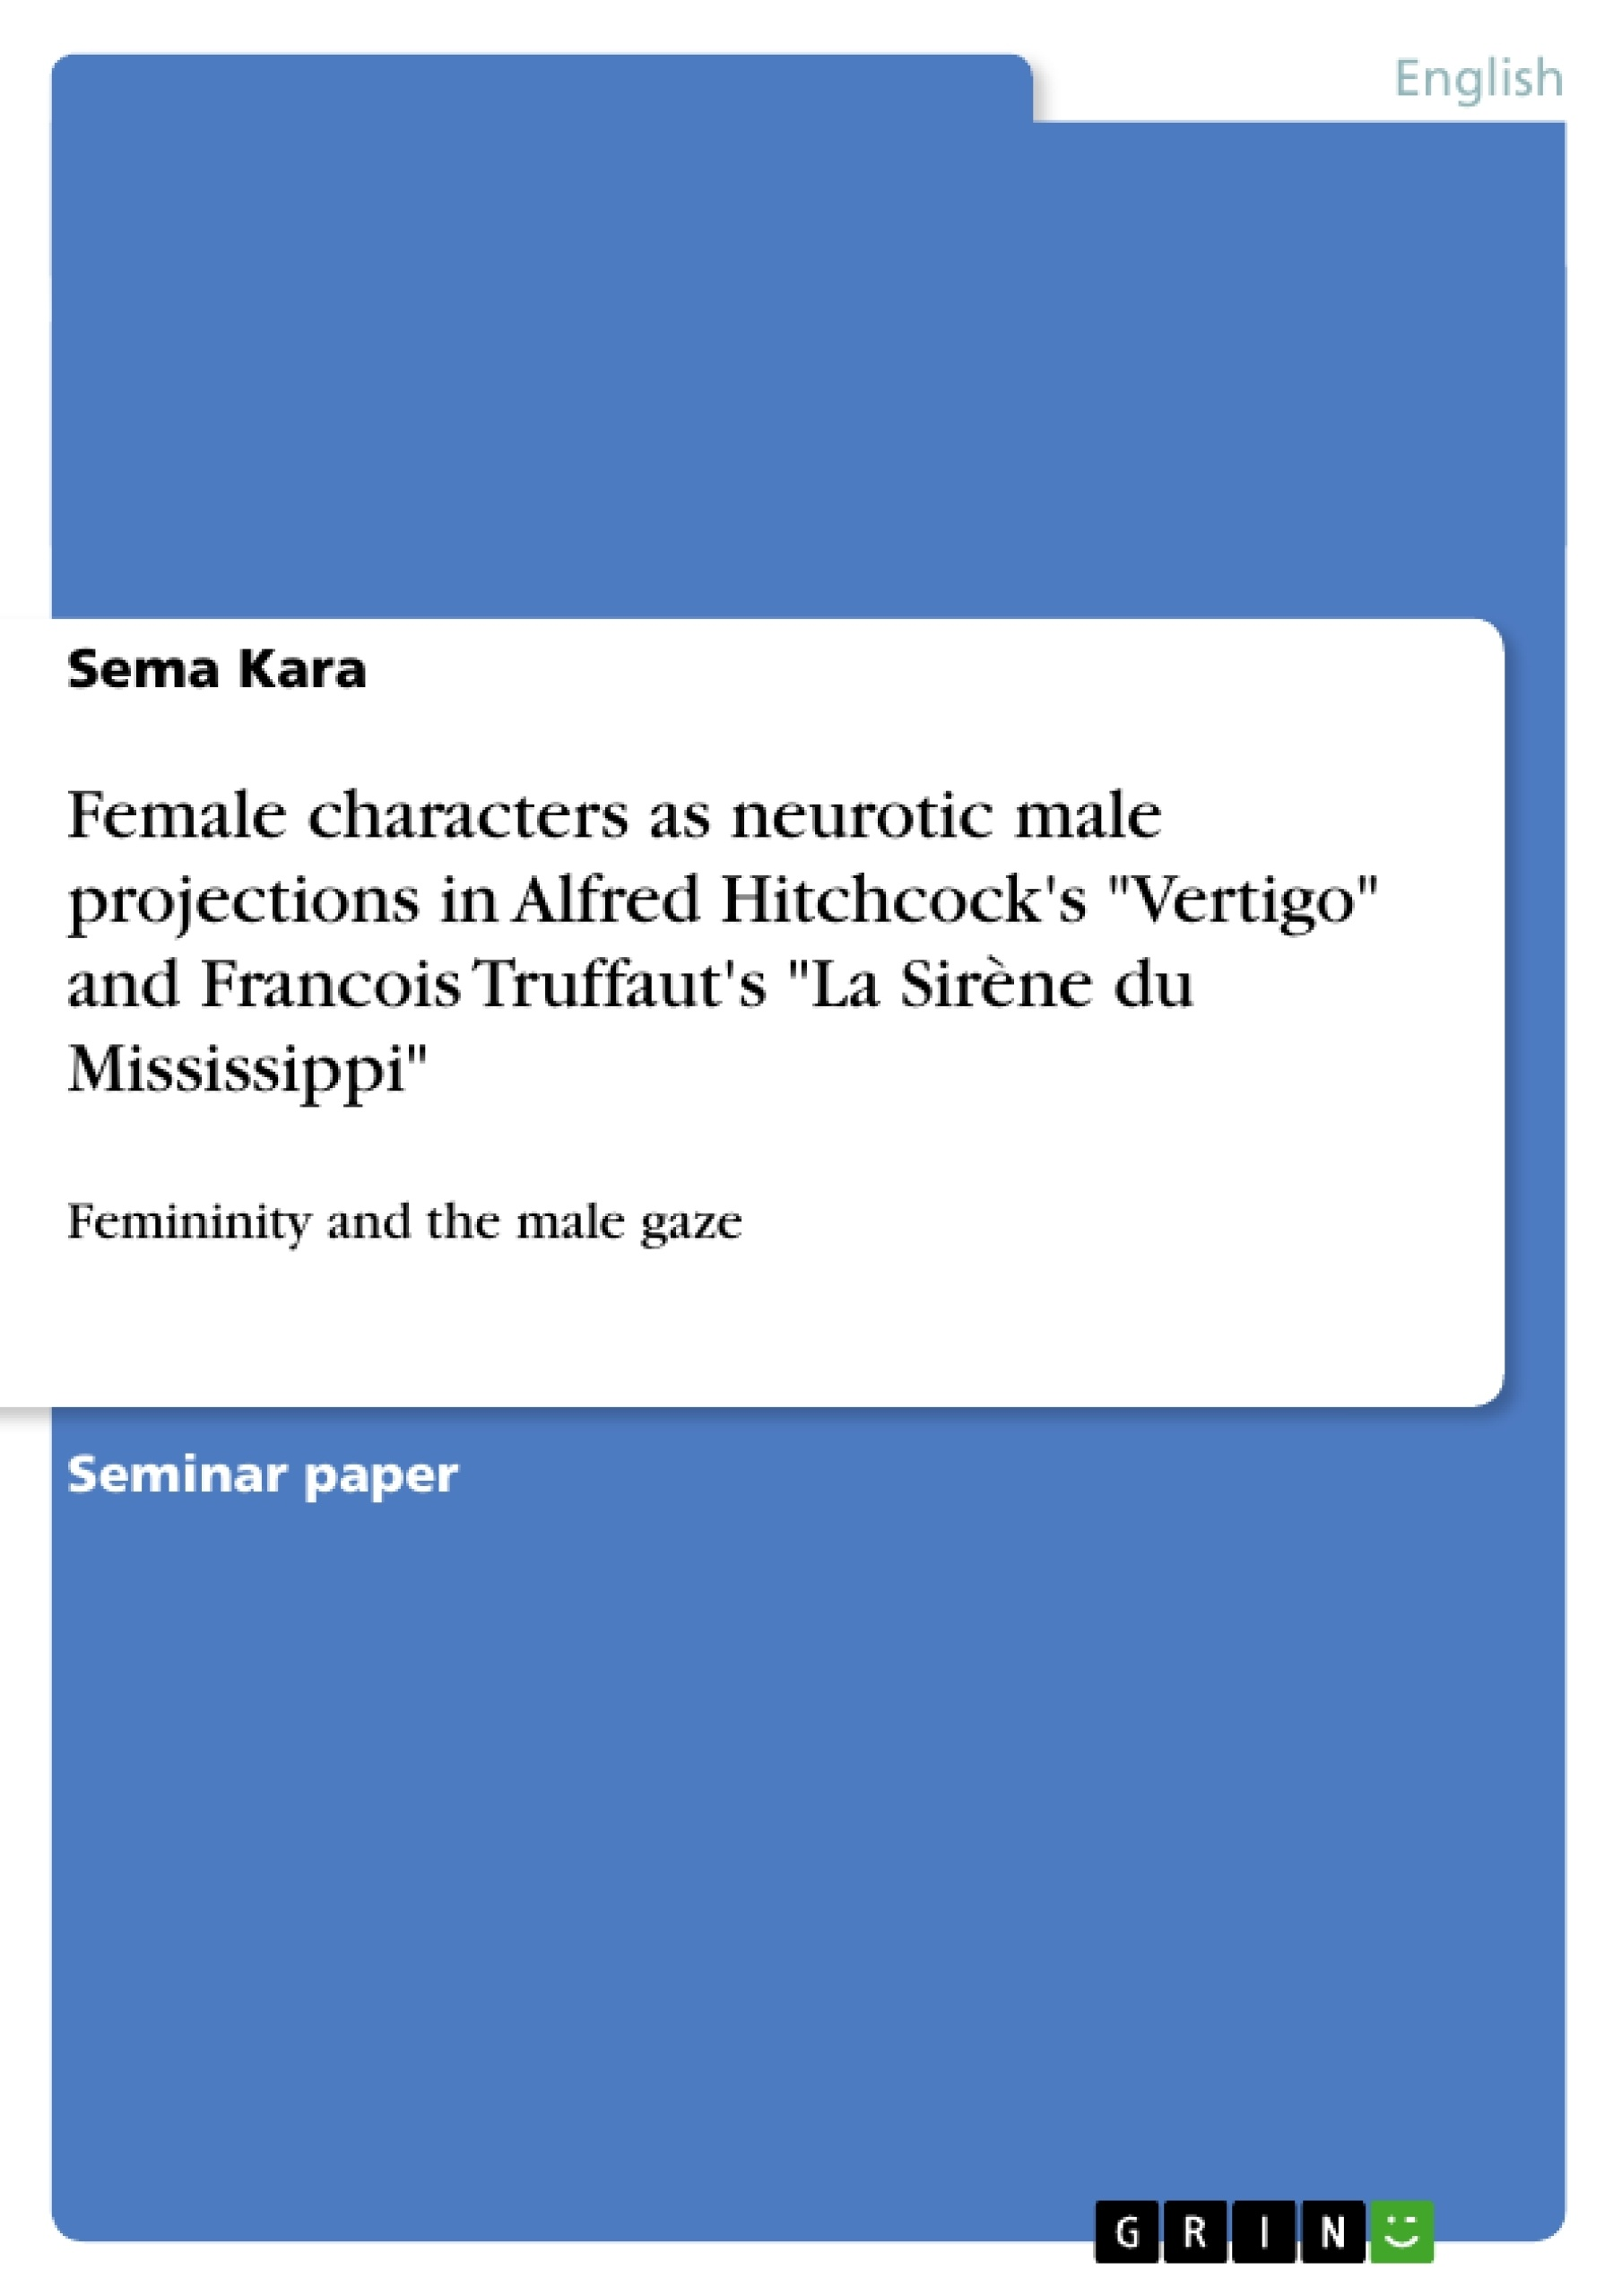 """Title: Female characters as neurotic male projections in Alfred Hitchcock's """"Vertigo"""" and Francois Truffaut's """"La Sirène du Mississippi"""""""